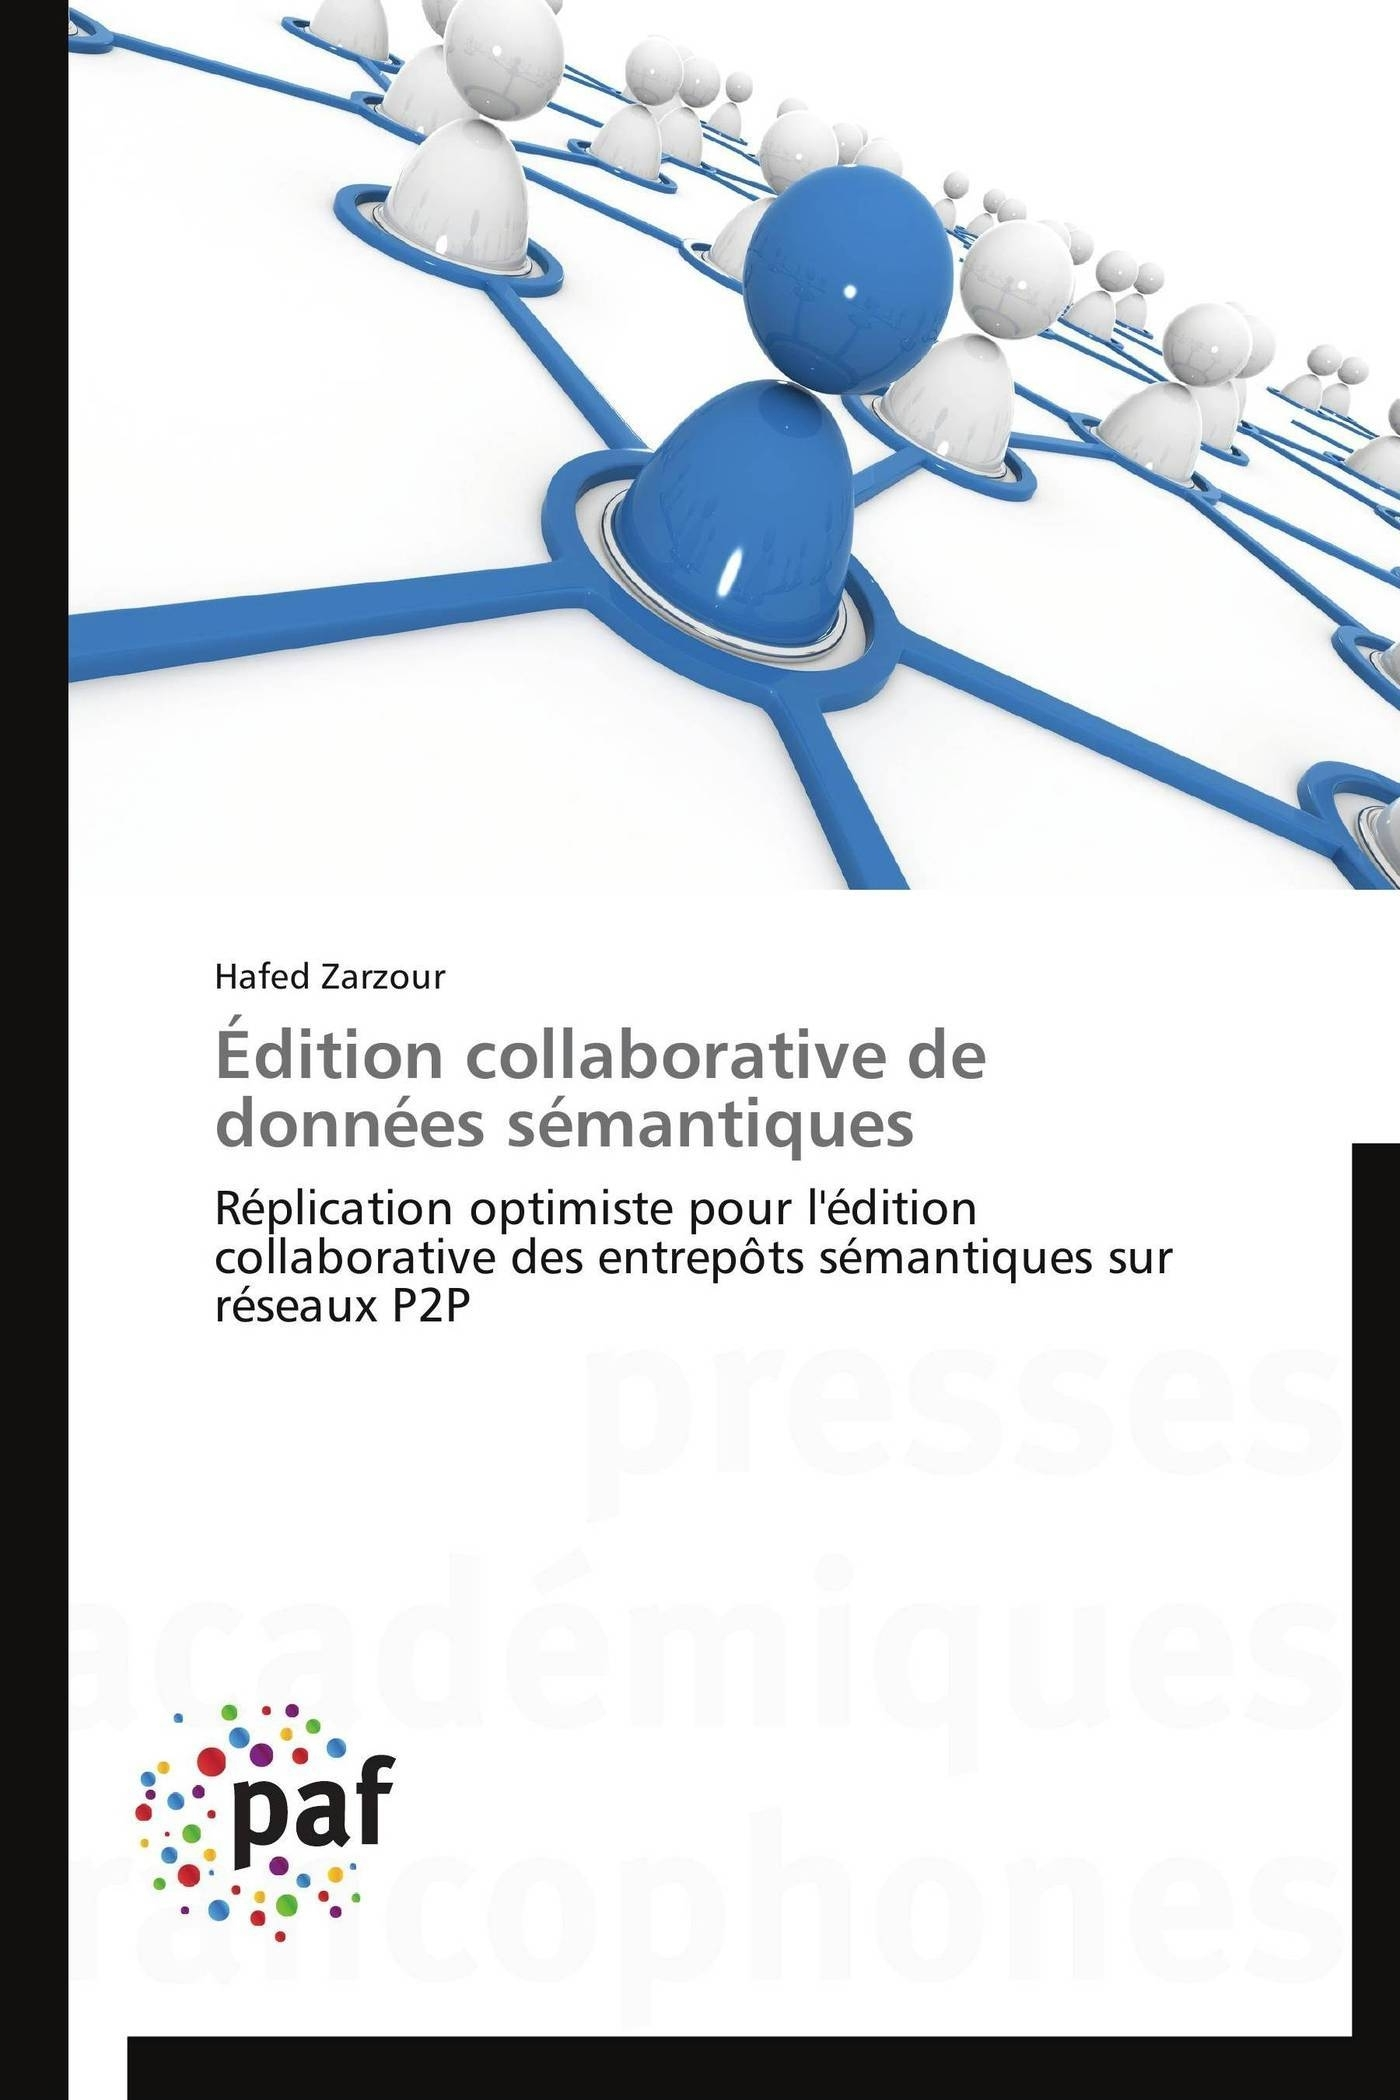 EDITION COLLABORATIVE DE DONNEES SEMANTIQUES